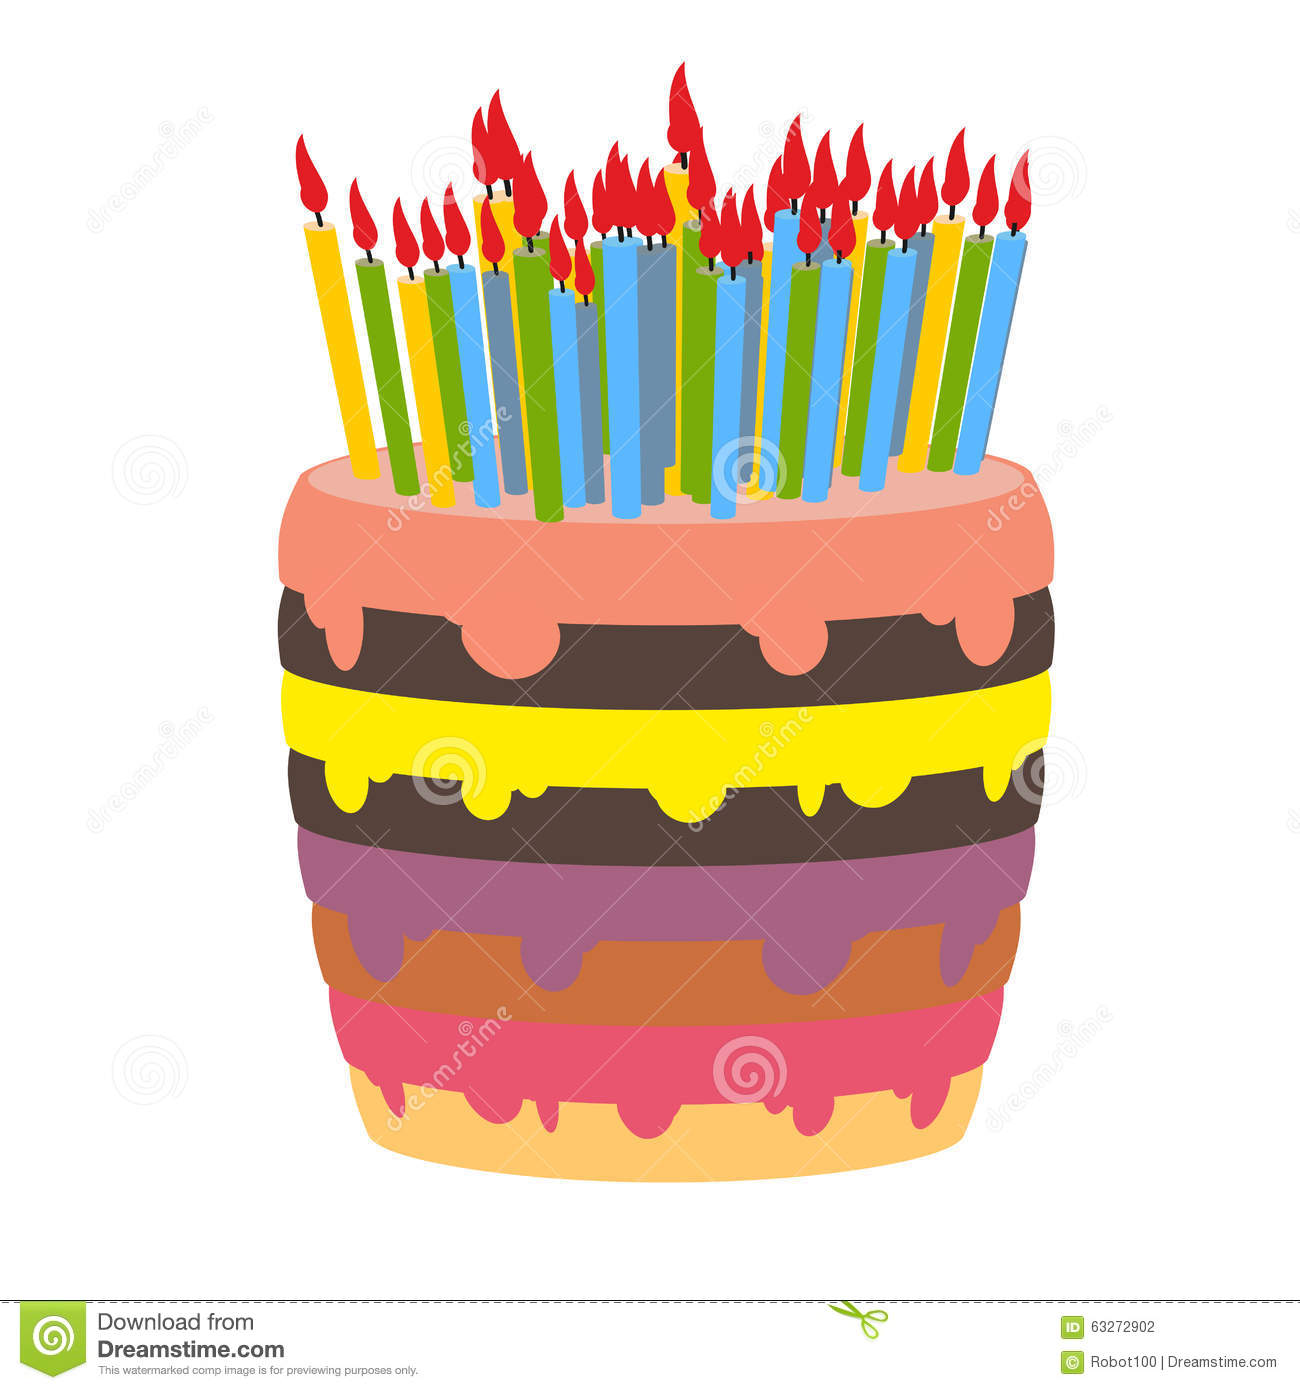 Image Birthday Cake With Lots Of Candles : Birthday Cake And Lots Of Candles. Stock Vector - Image ...